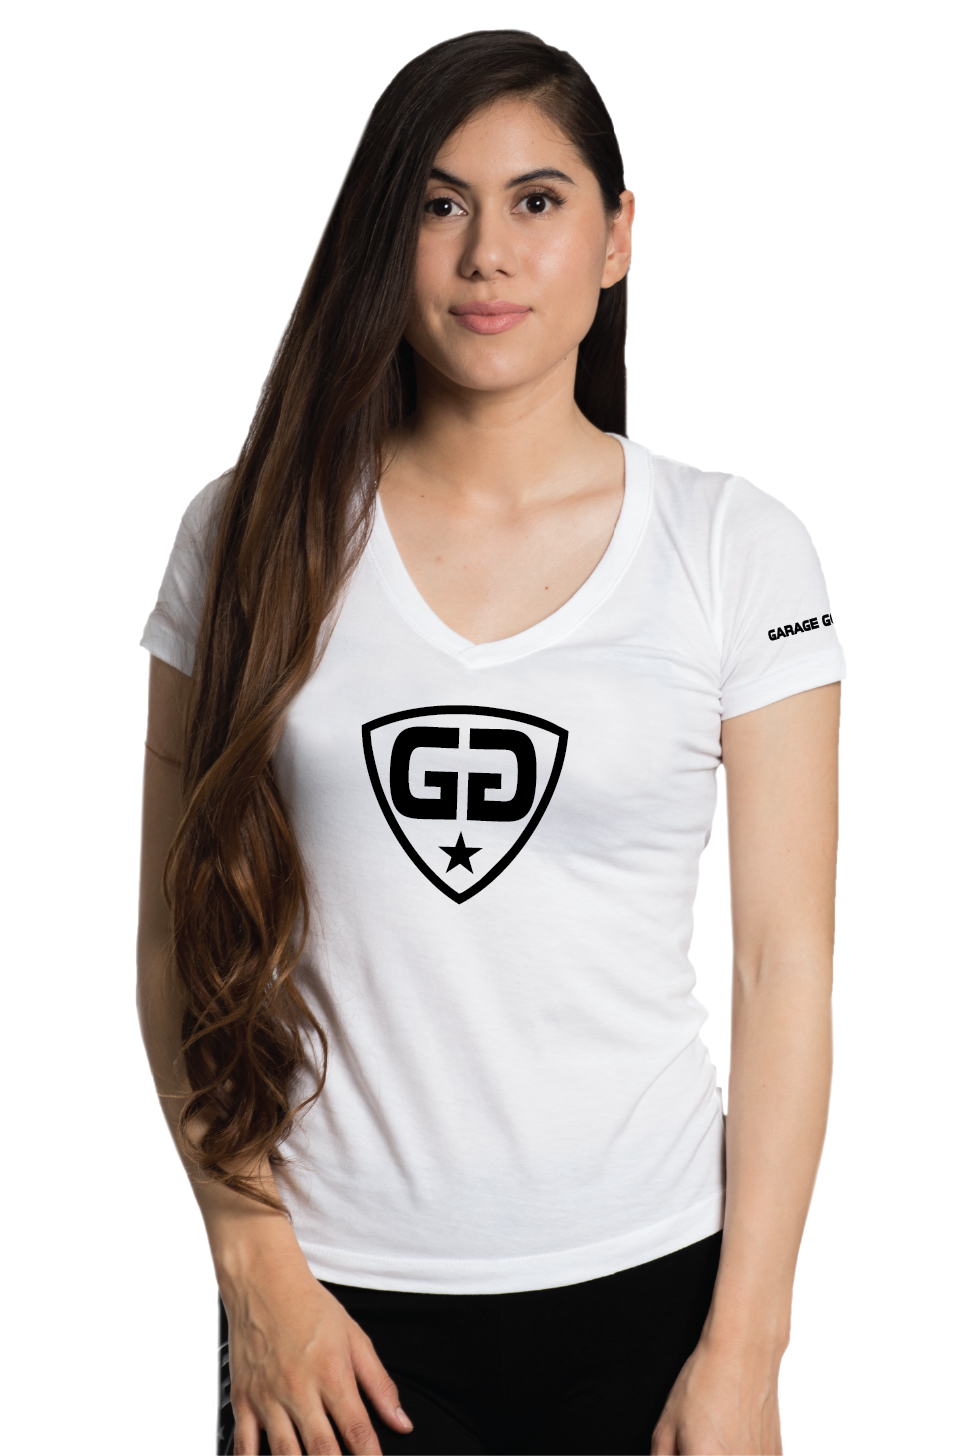 W gg center shield white